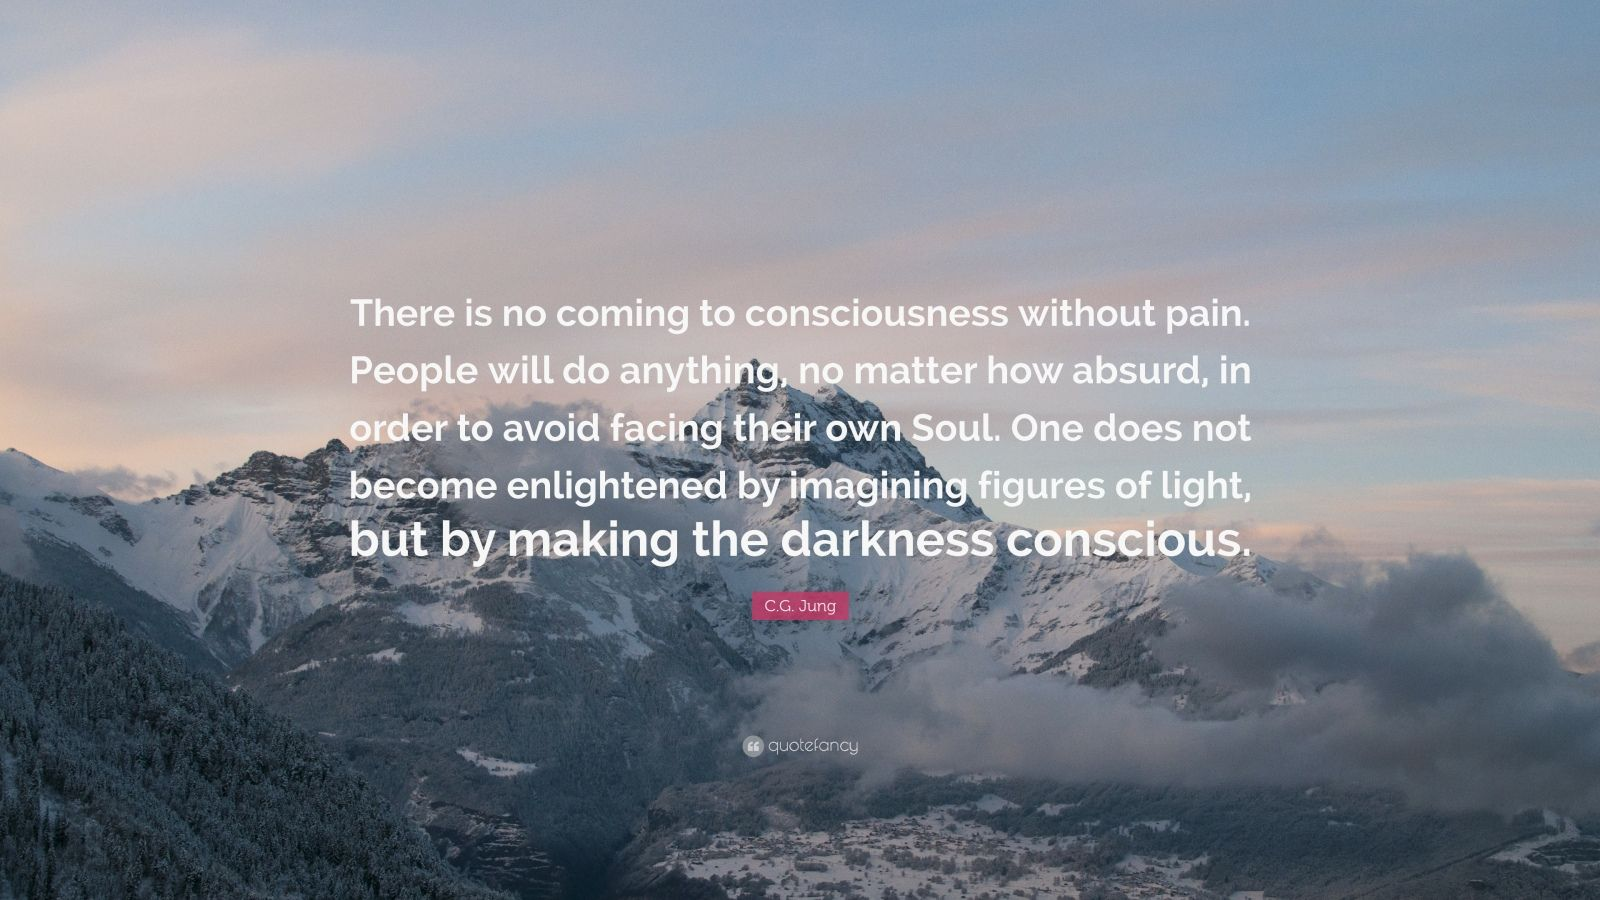 "C.G. Jung Quote: ""There is no coming to consciousness without pain. People will do anything, no matter how absurd, in order to avoid facing their own Soul. One does not become enlightened by imagining figures of light, but by making the darkness conscious."""